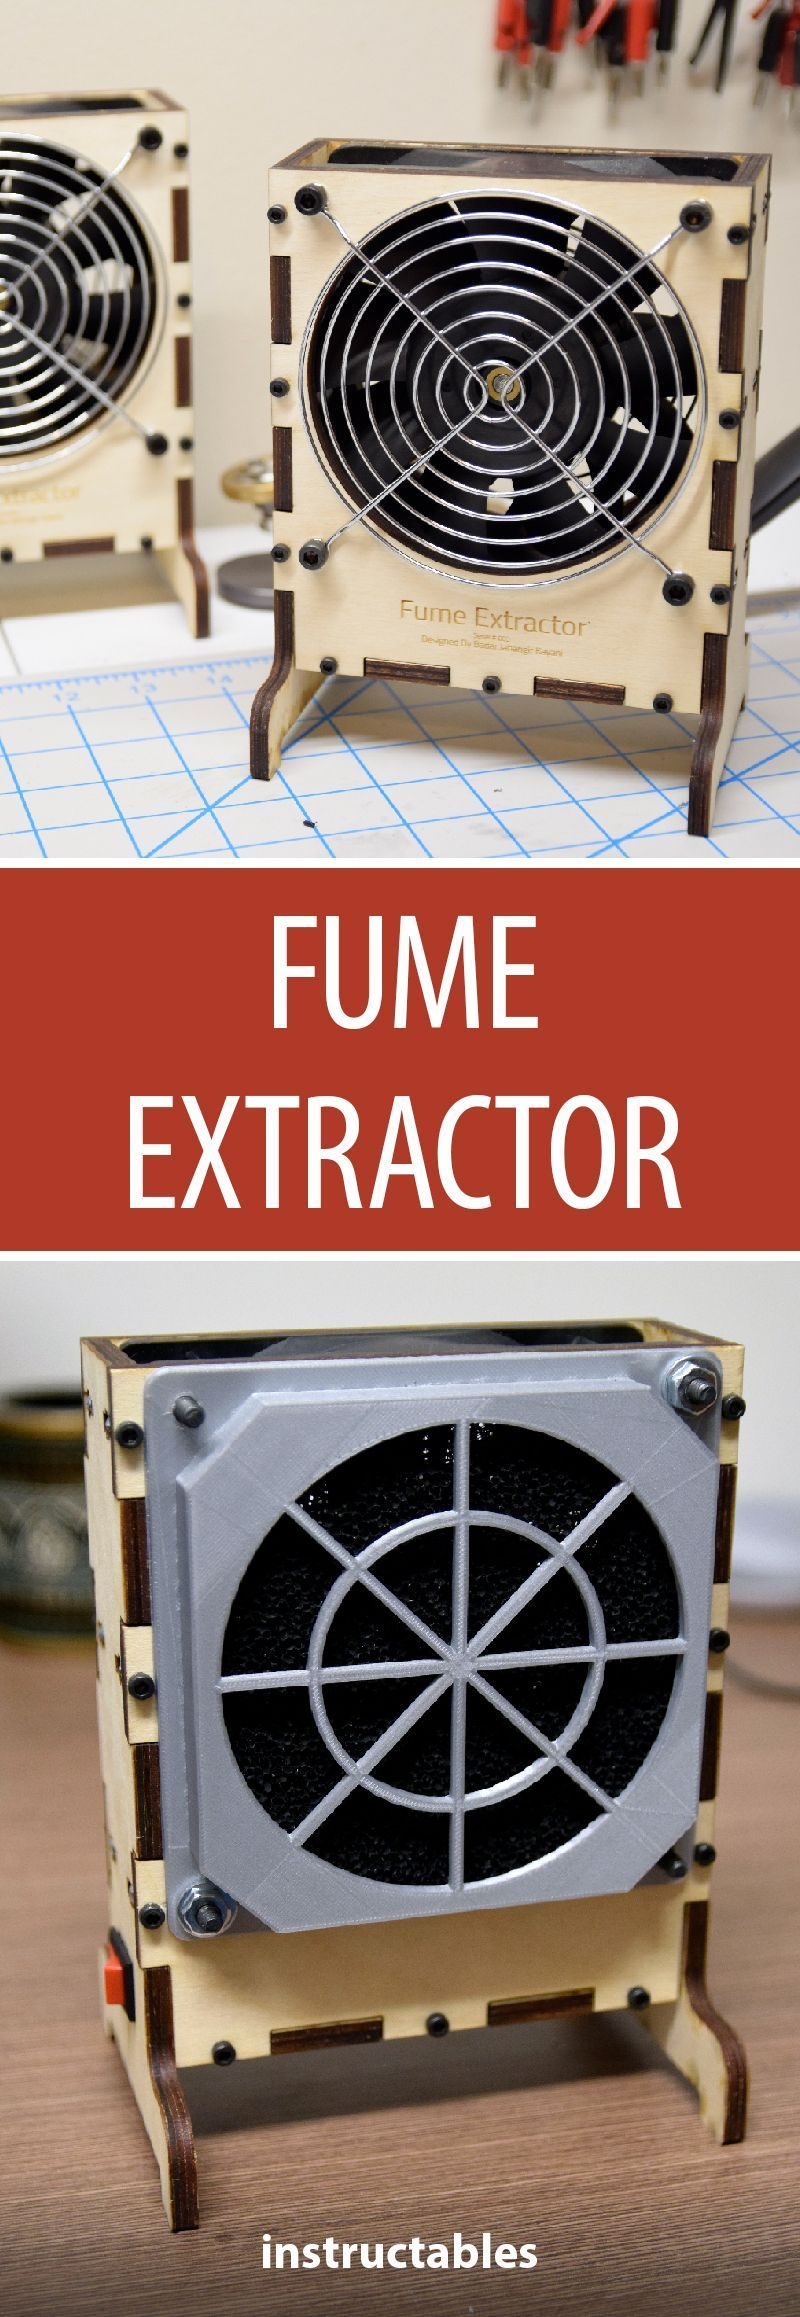 Fume Extractor Best Pins Today Pinterest Projects Diy And Electrical On Wiring Home Electronics Tool Shop Garage Workshop